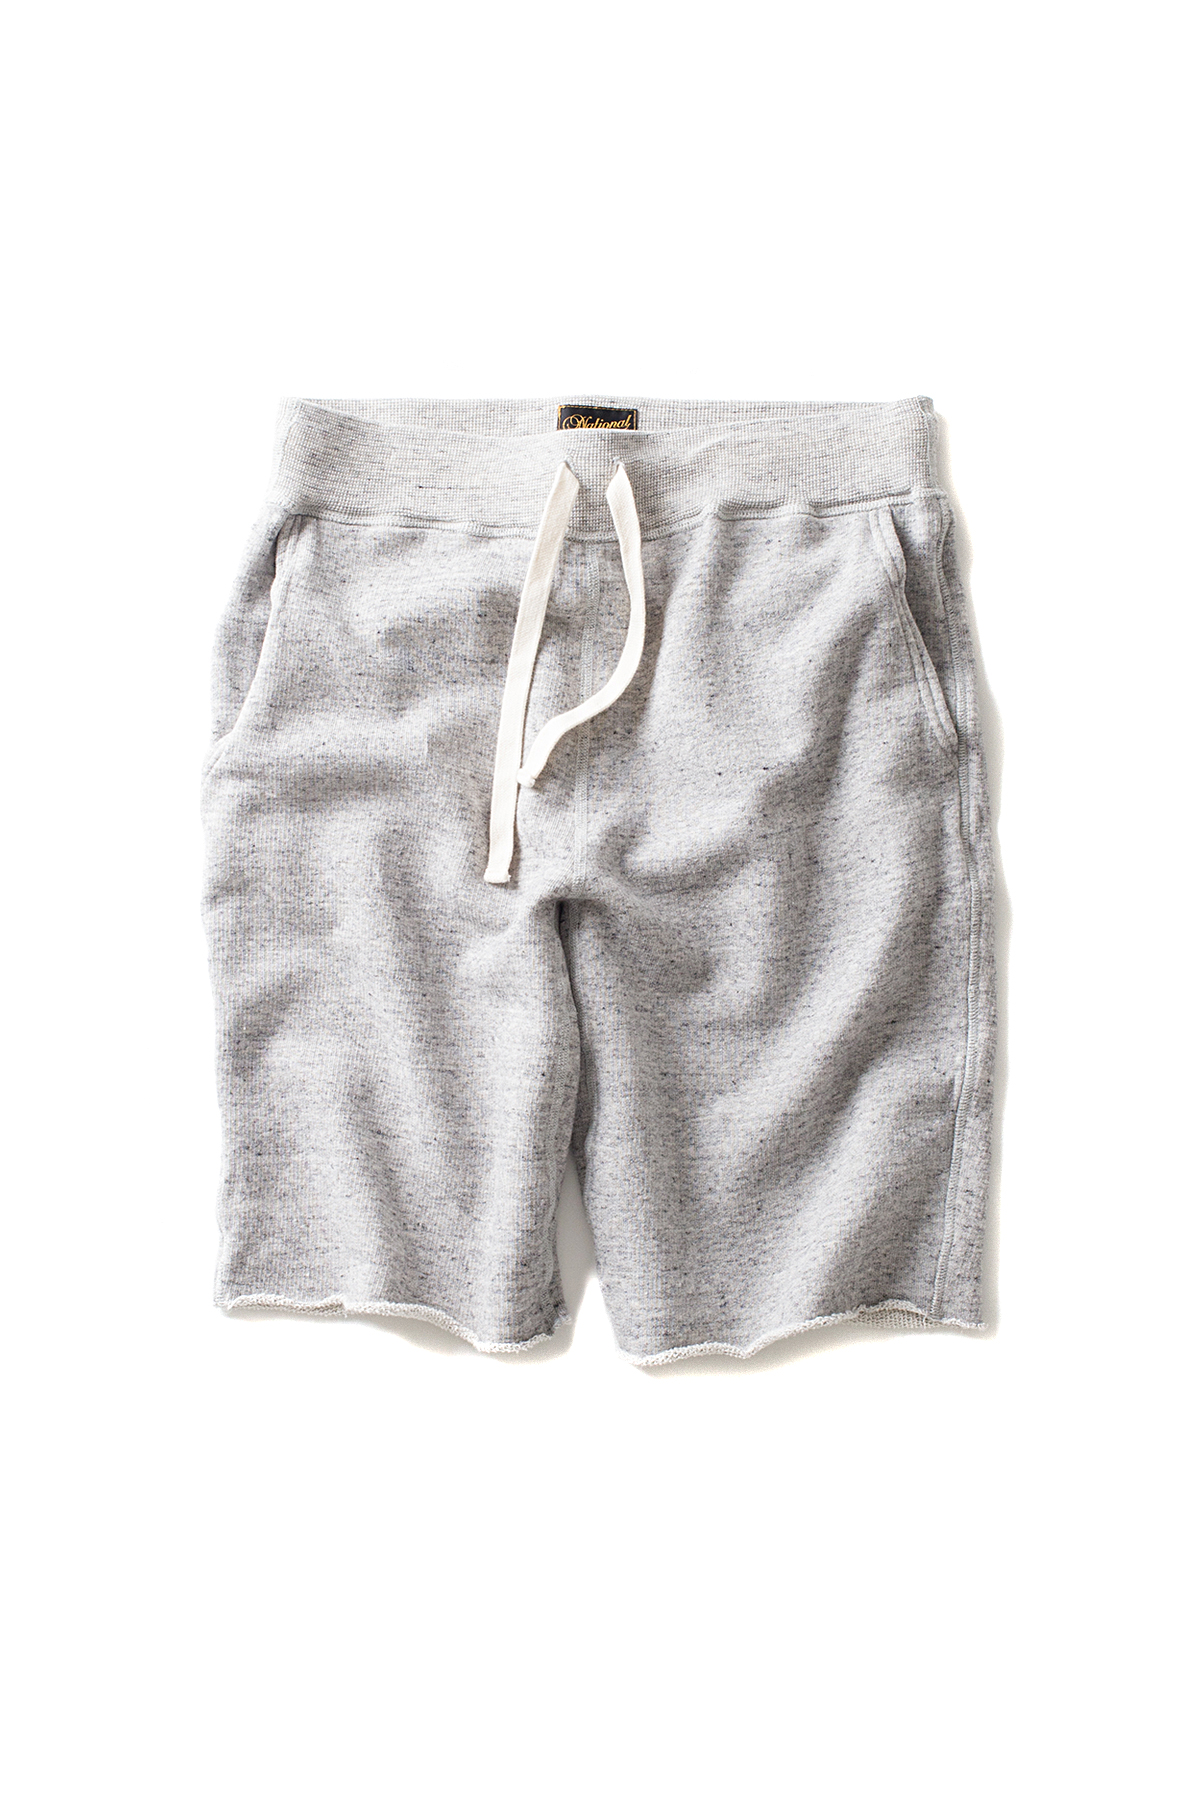 NAG : Gym Shorts (Grey Haze)